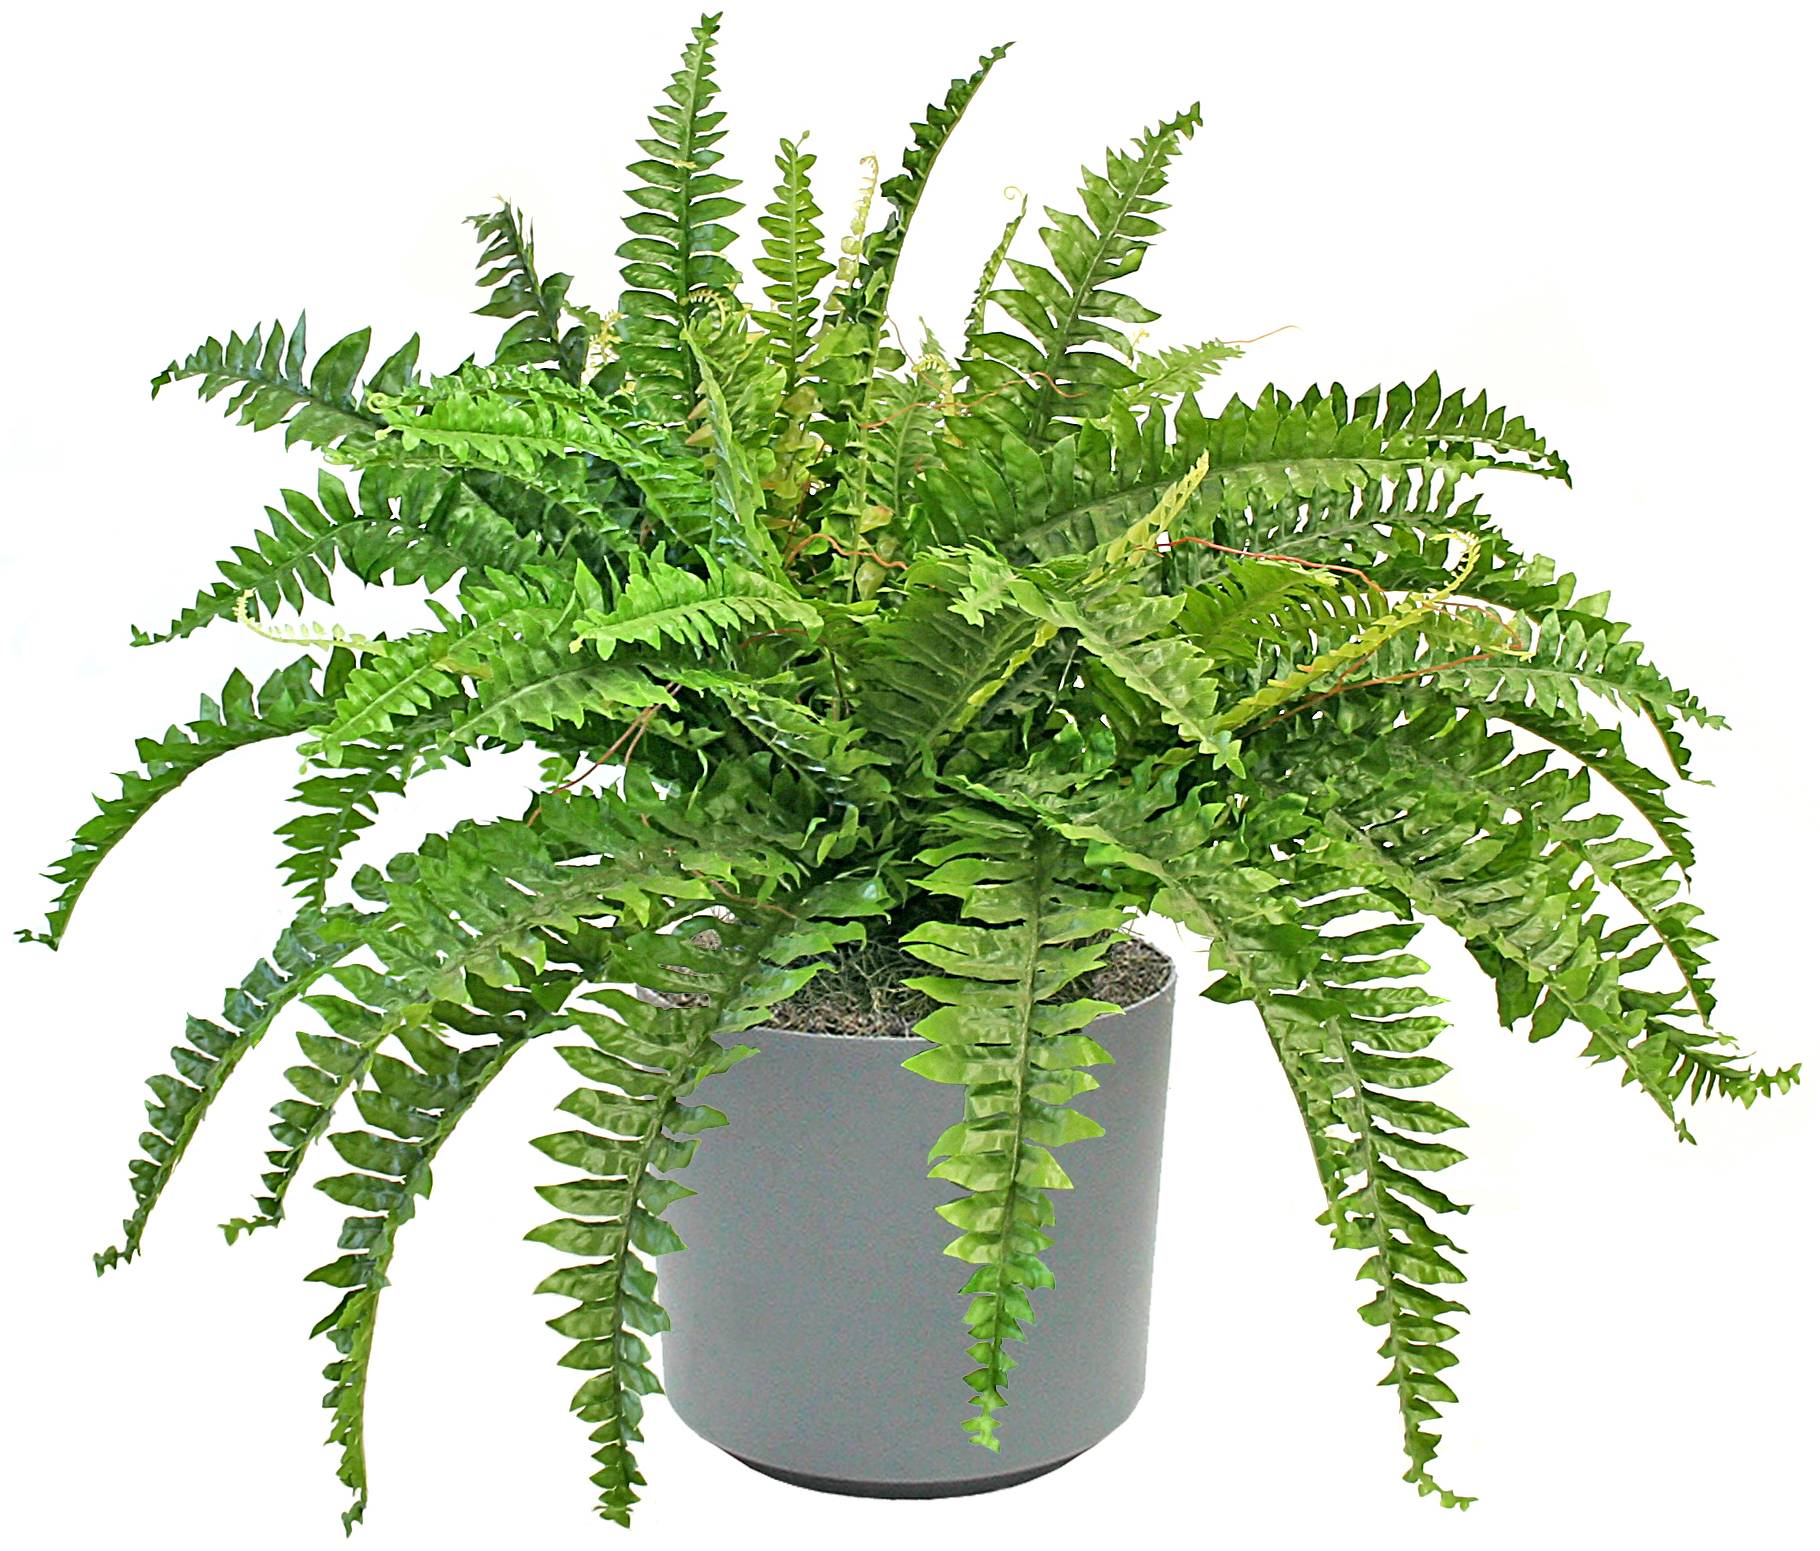 10 air purifying indoor plants homafrica for Best air purifying plants for bedroom